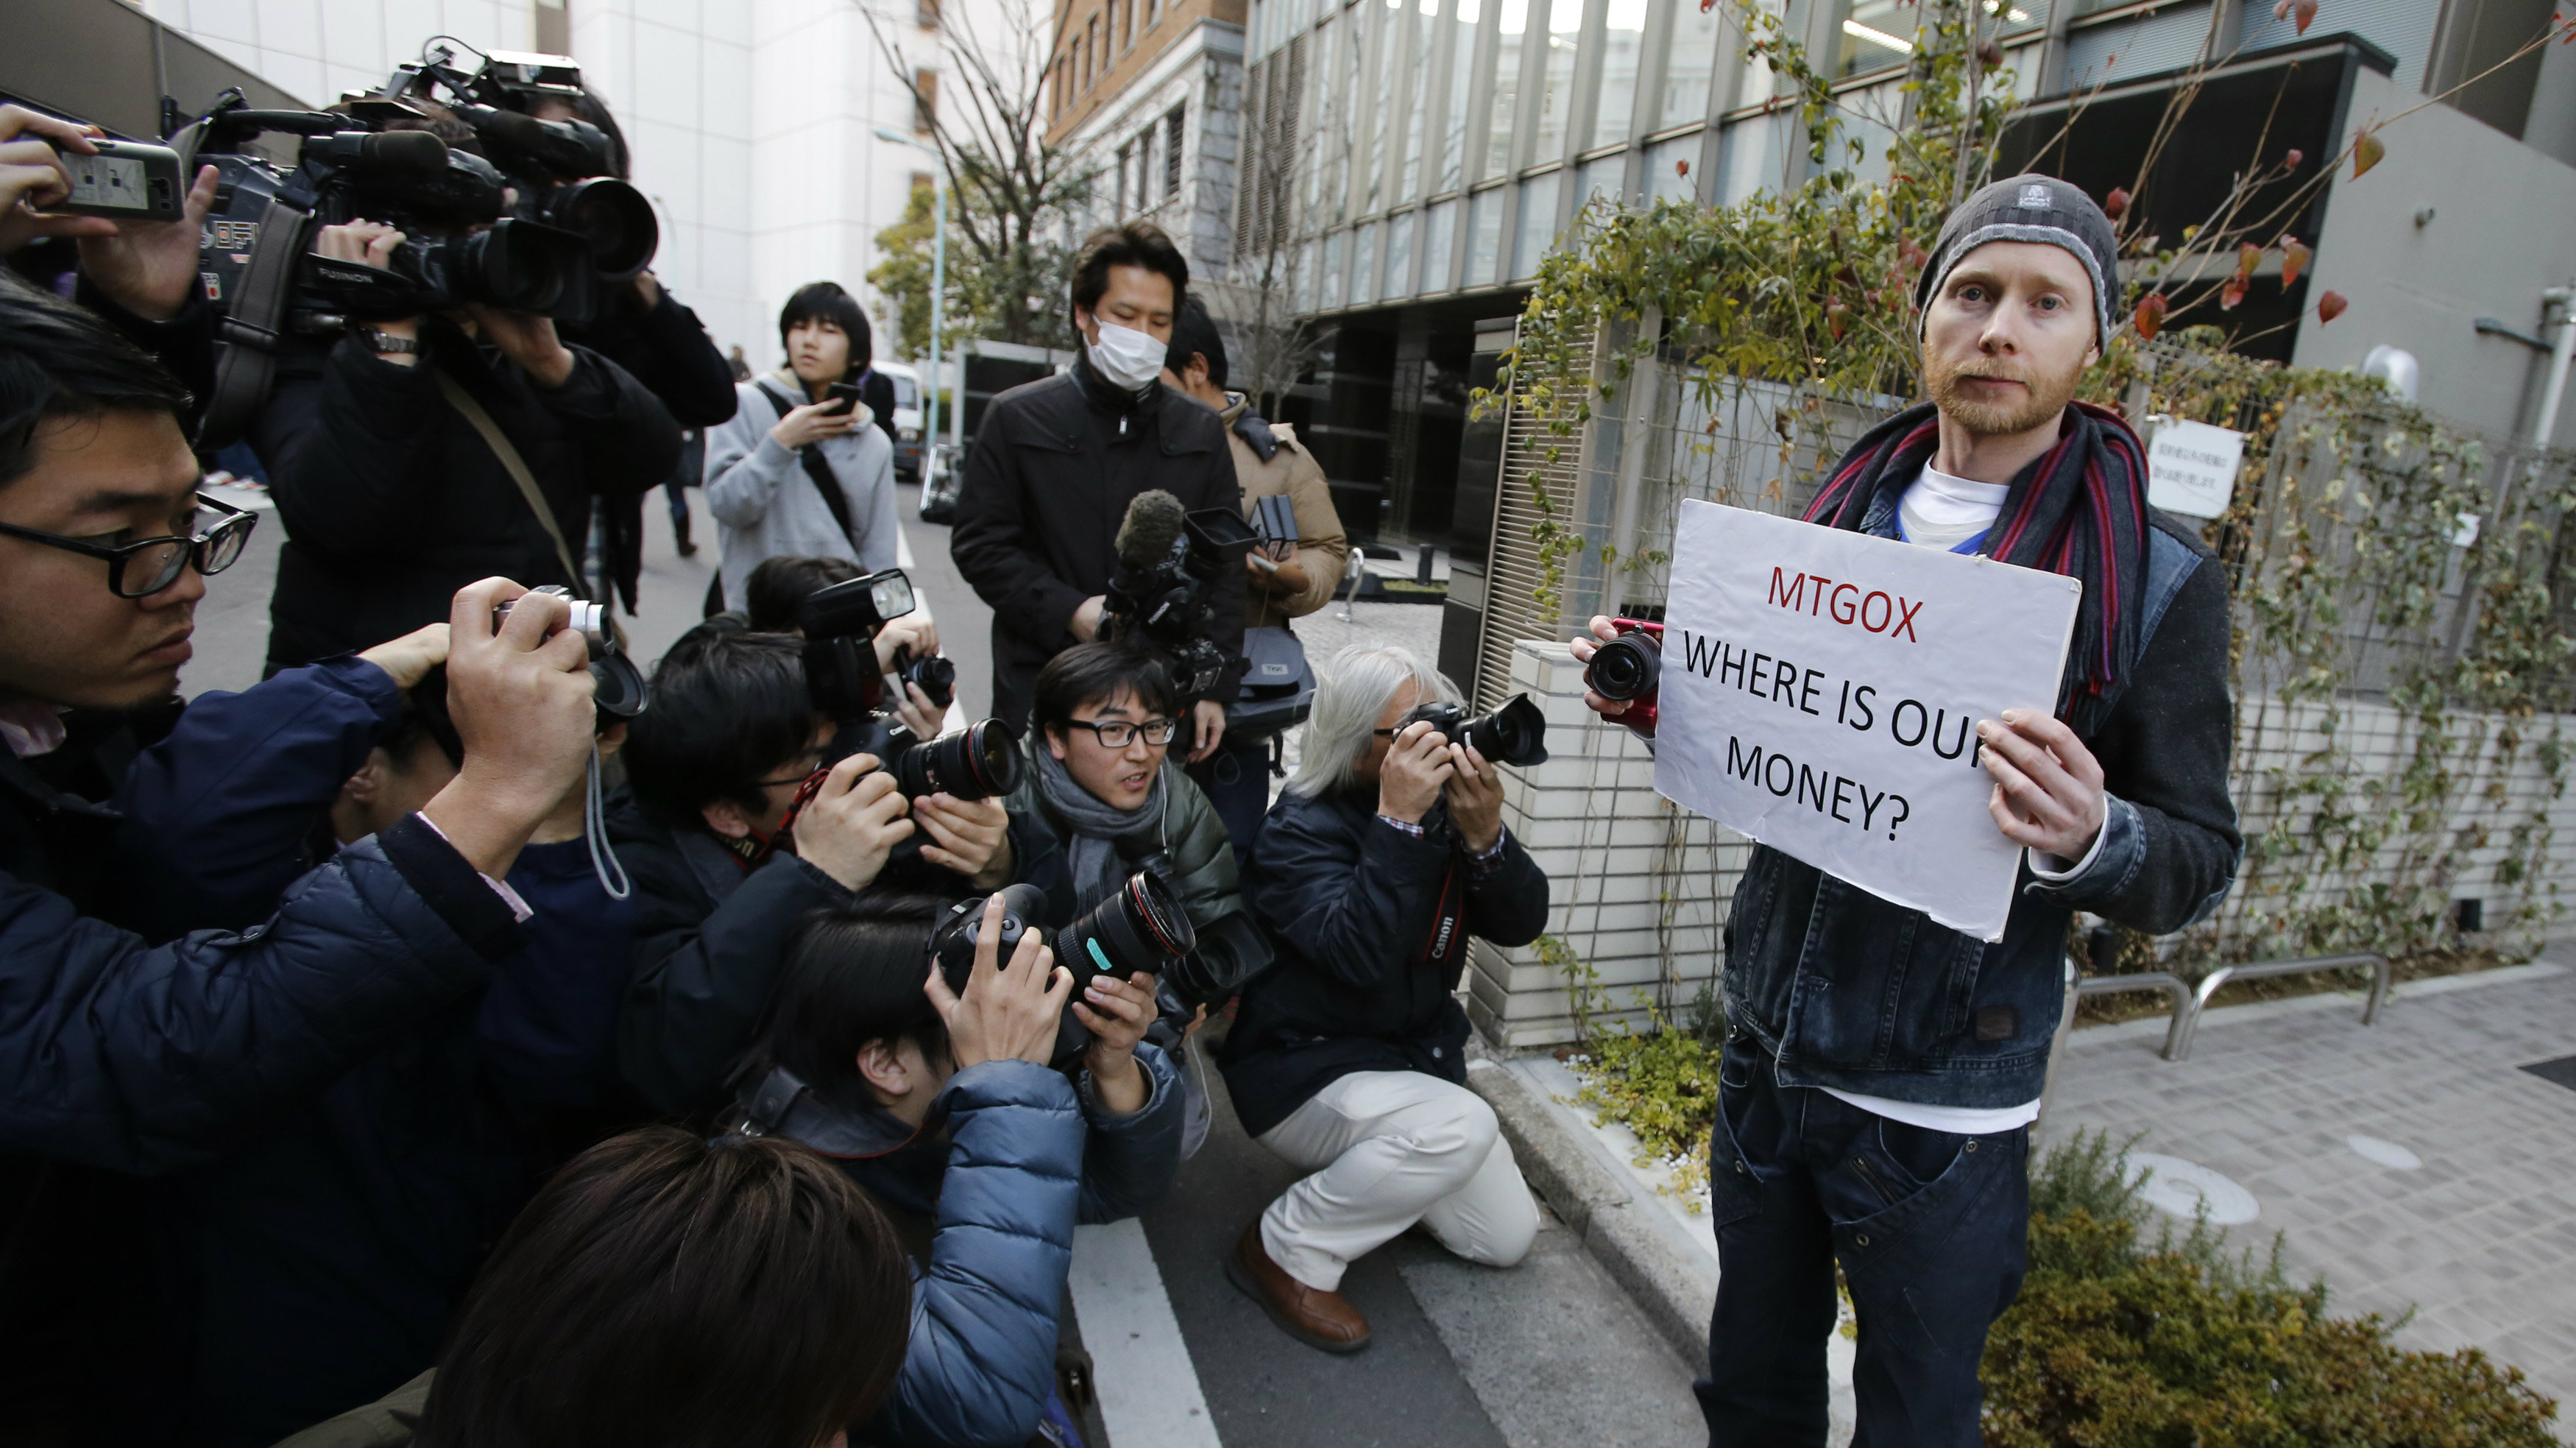 Kolin Burges (R), a self-styled cryptocurrency trader and former software engineer from London, holds a placard to protest against Mt. Gox, as photographers take photos of him in front of the building where the digital marketplace operator was formerly housed in Tokyo February 26, 2014. Japanese authorities are looking into the abrupt closure of Mt. Gox, the top government spokesman said on Wednesday in Tokyo's first official reaction to the turmoil at what was the world's biggest exchange for bitcoin virtual currency.